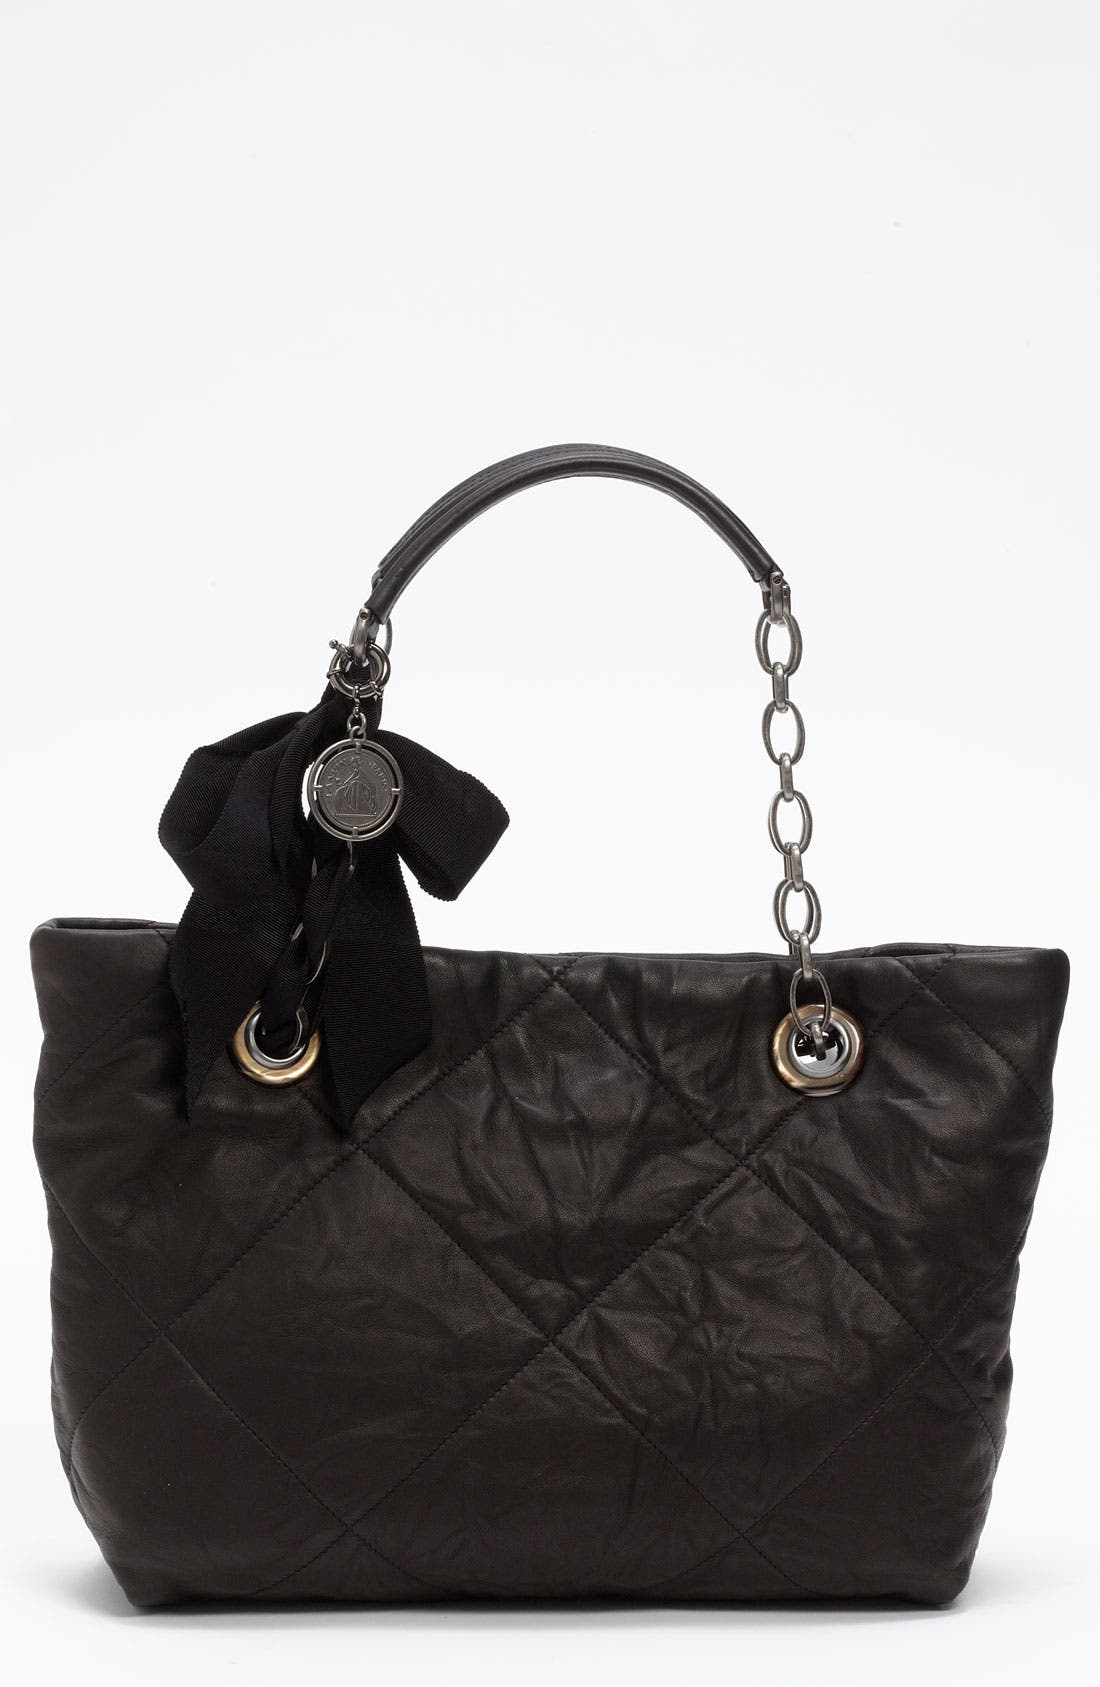 Alternate Image 1 Selected - Lanvin 'Amalia - Small' Leather Tote